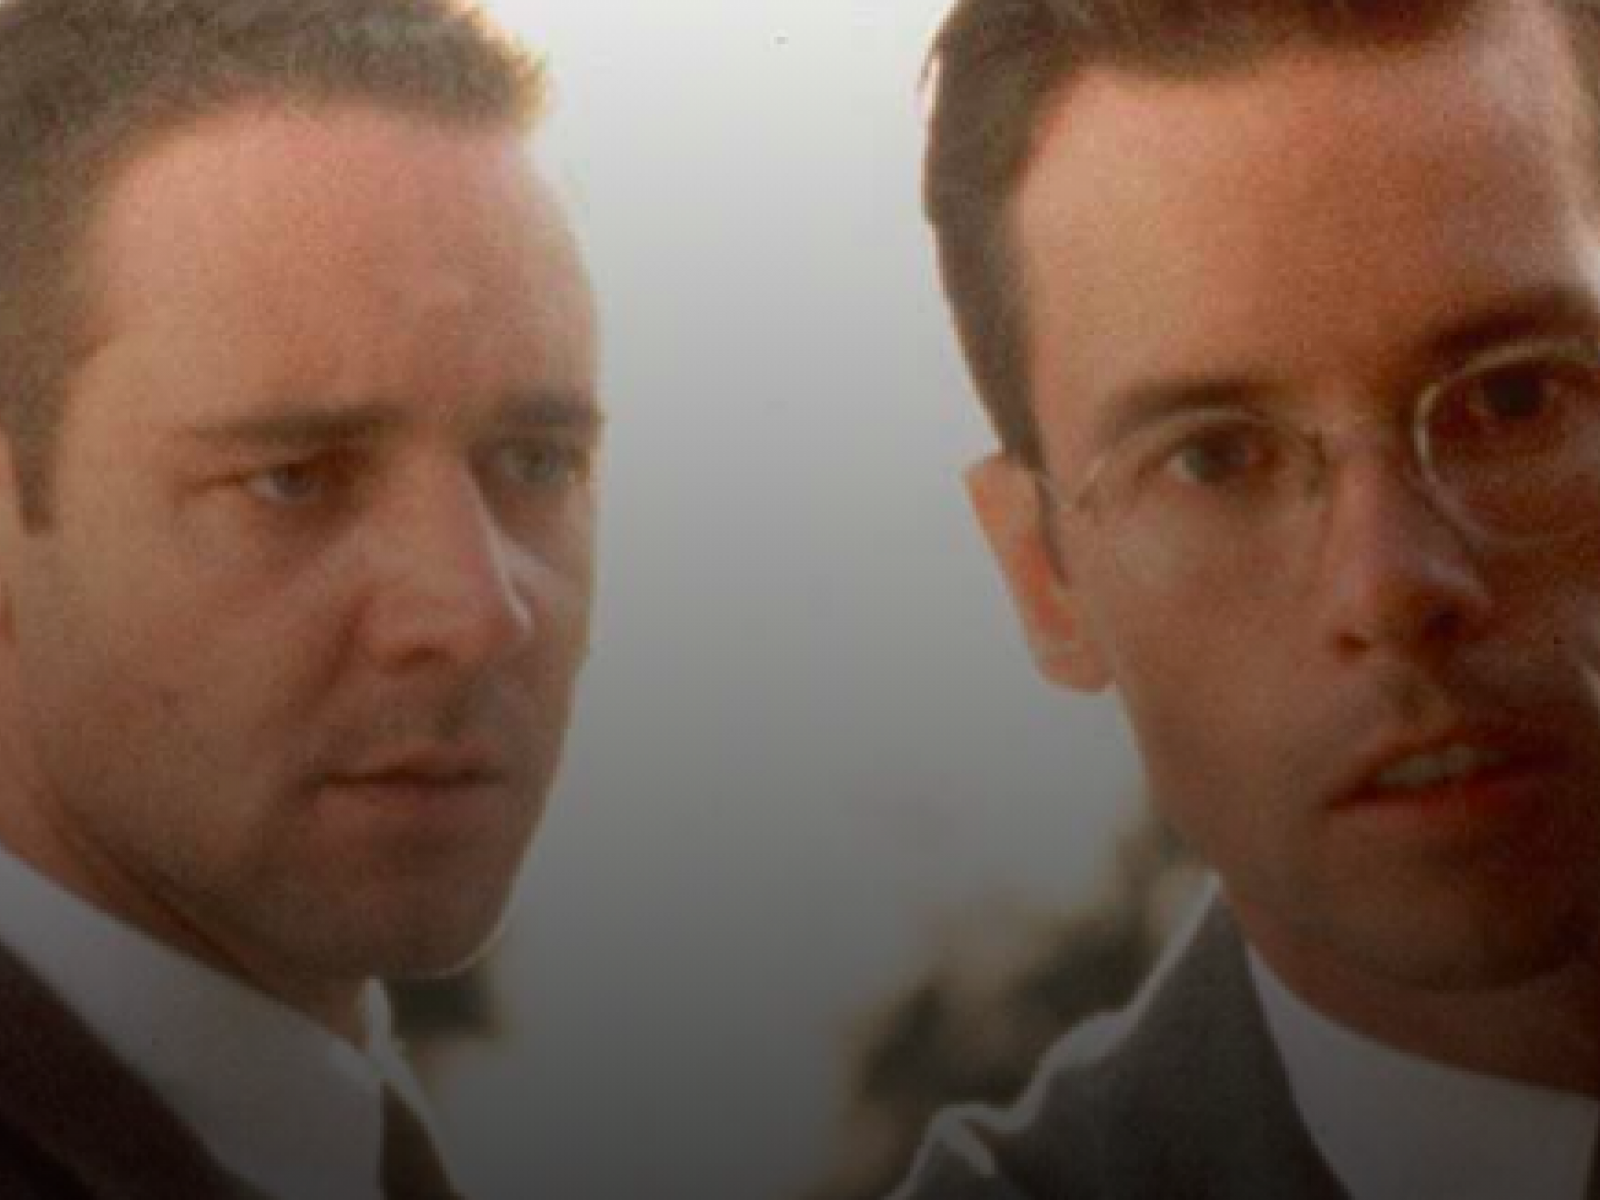 Main image for event titled L.A. CONFIDENTIAL